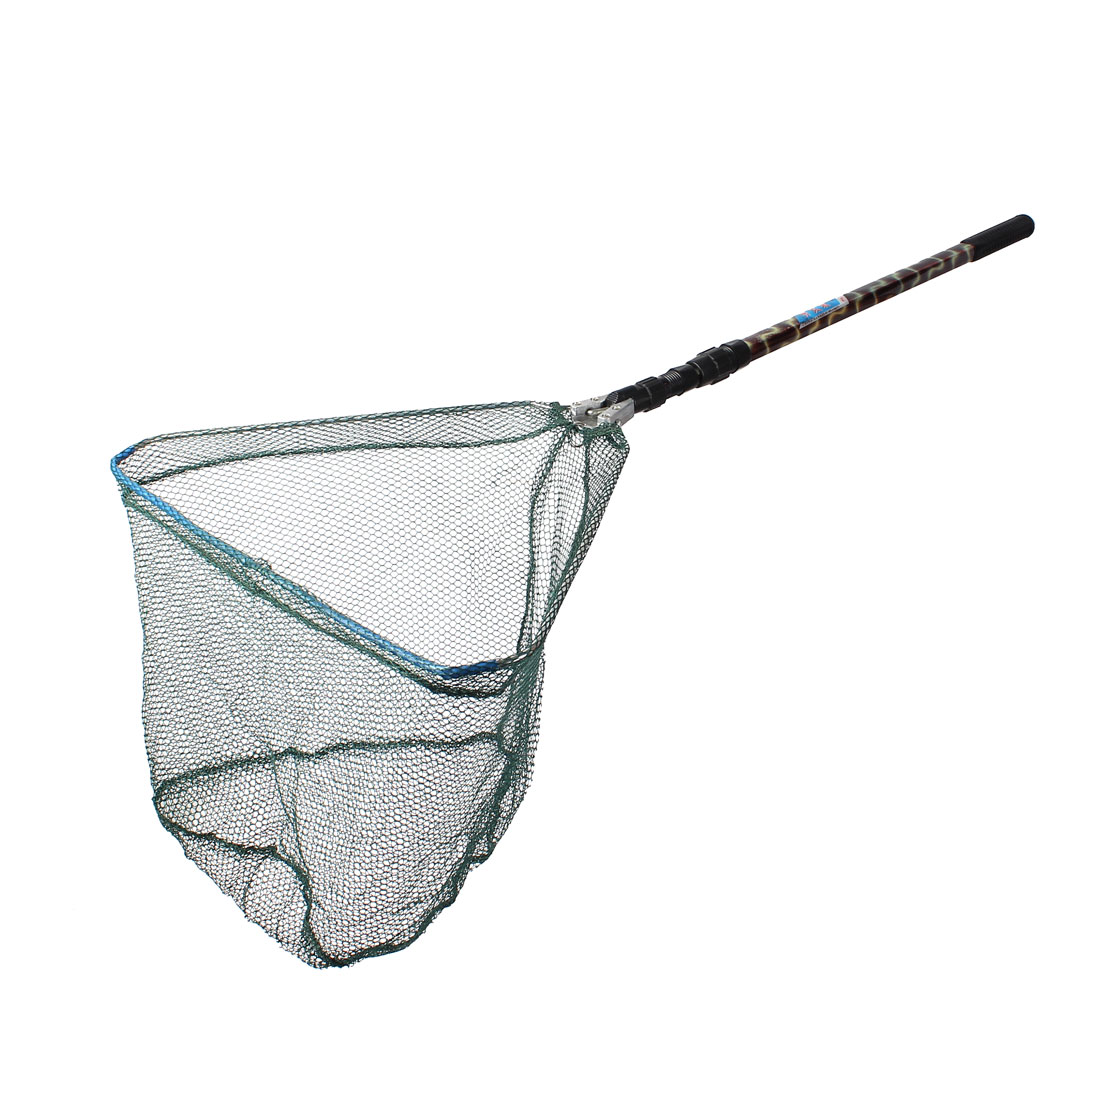 Landing Net Folding Telescopic Extends from 65cm to 174cm